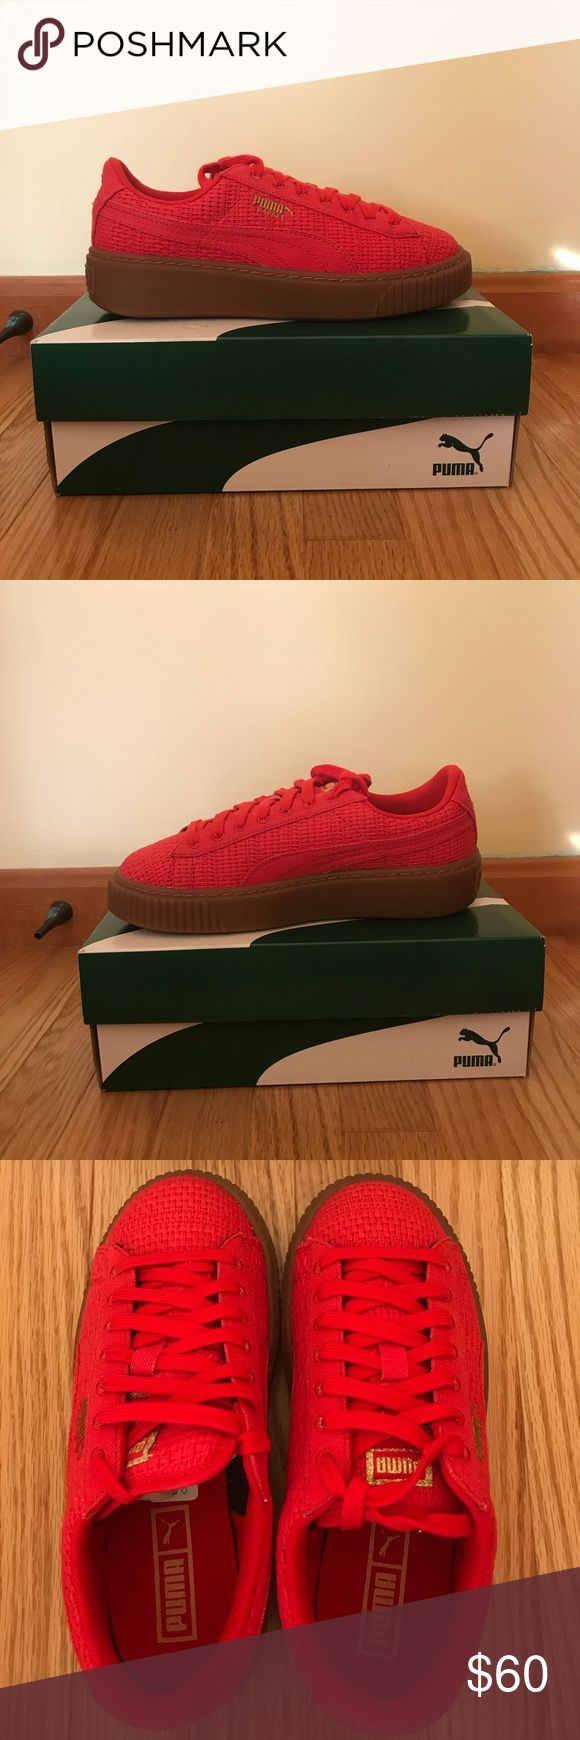 Puma Sneakers Bright red woven puma sneakers. Never before worn. Only a few weeks old. Originally got them on sale so I'm selling for $60 instead of $110. Super cute! Puma Shoes Sneakers